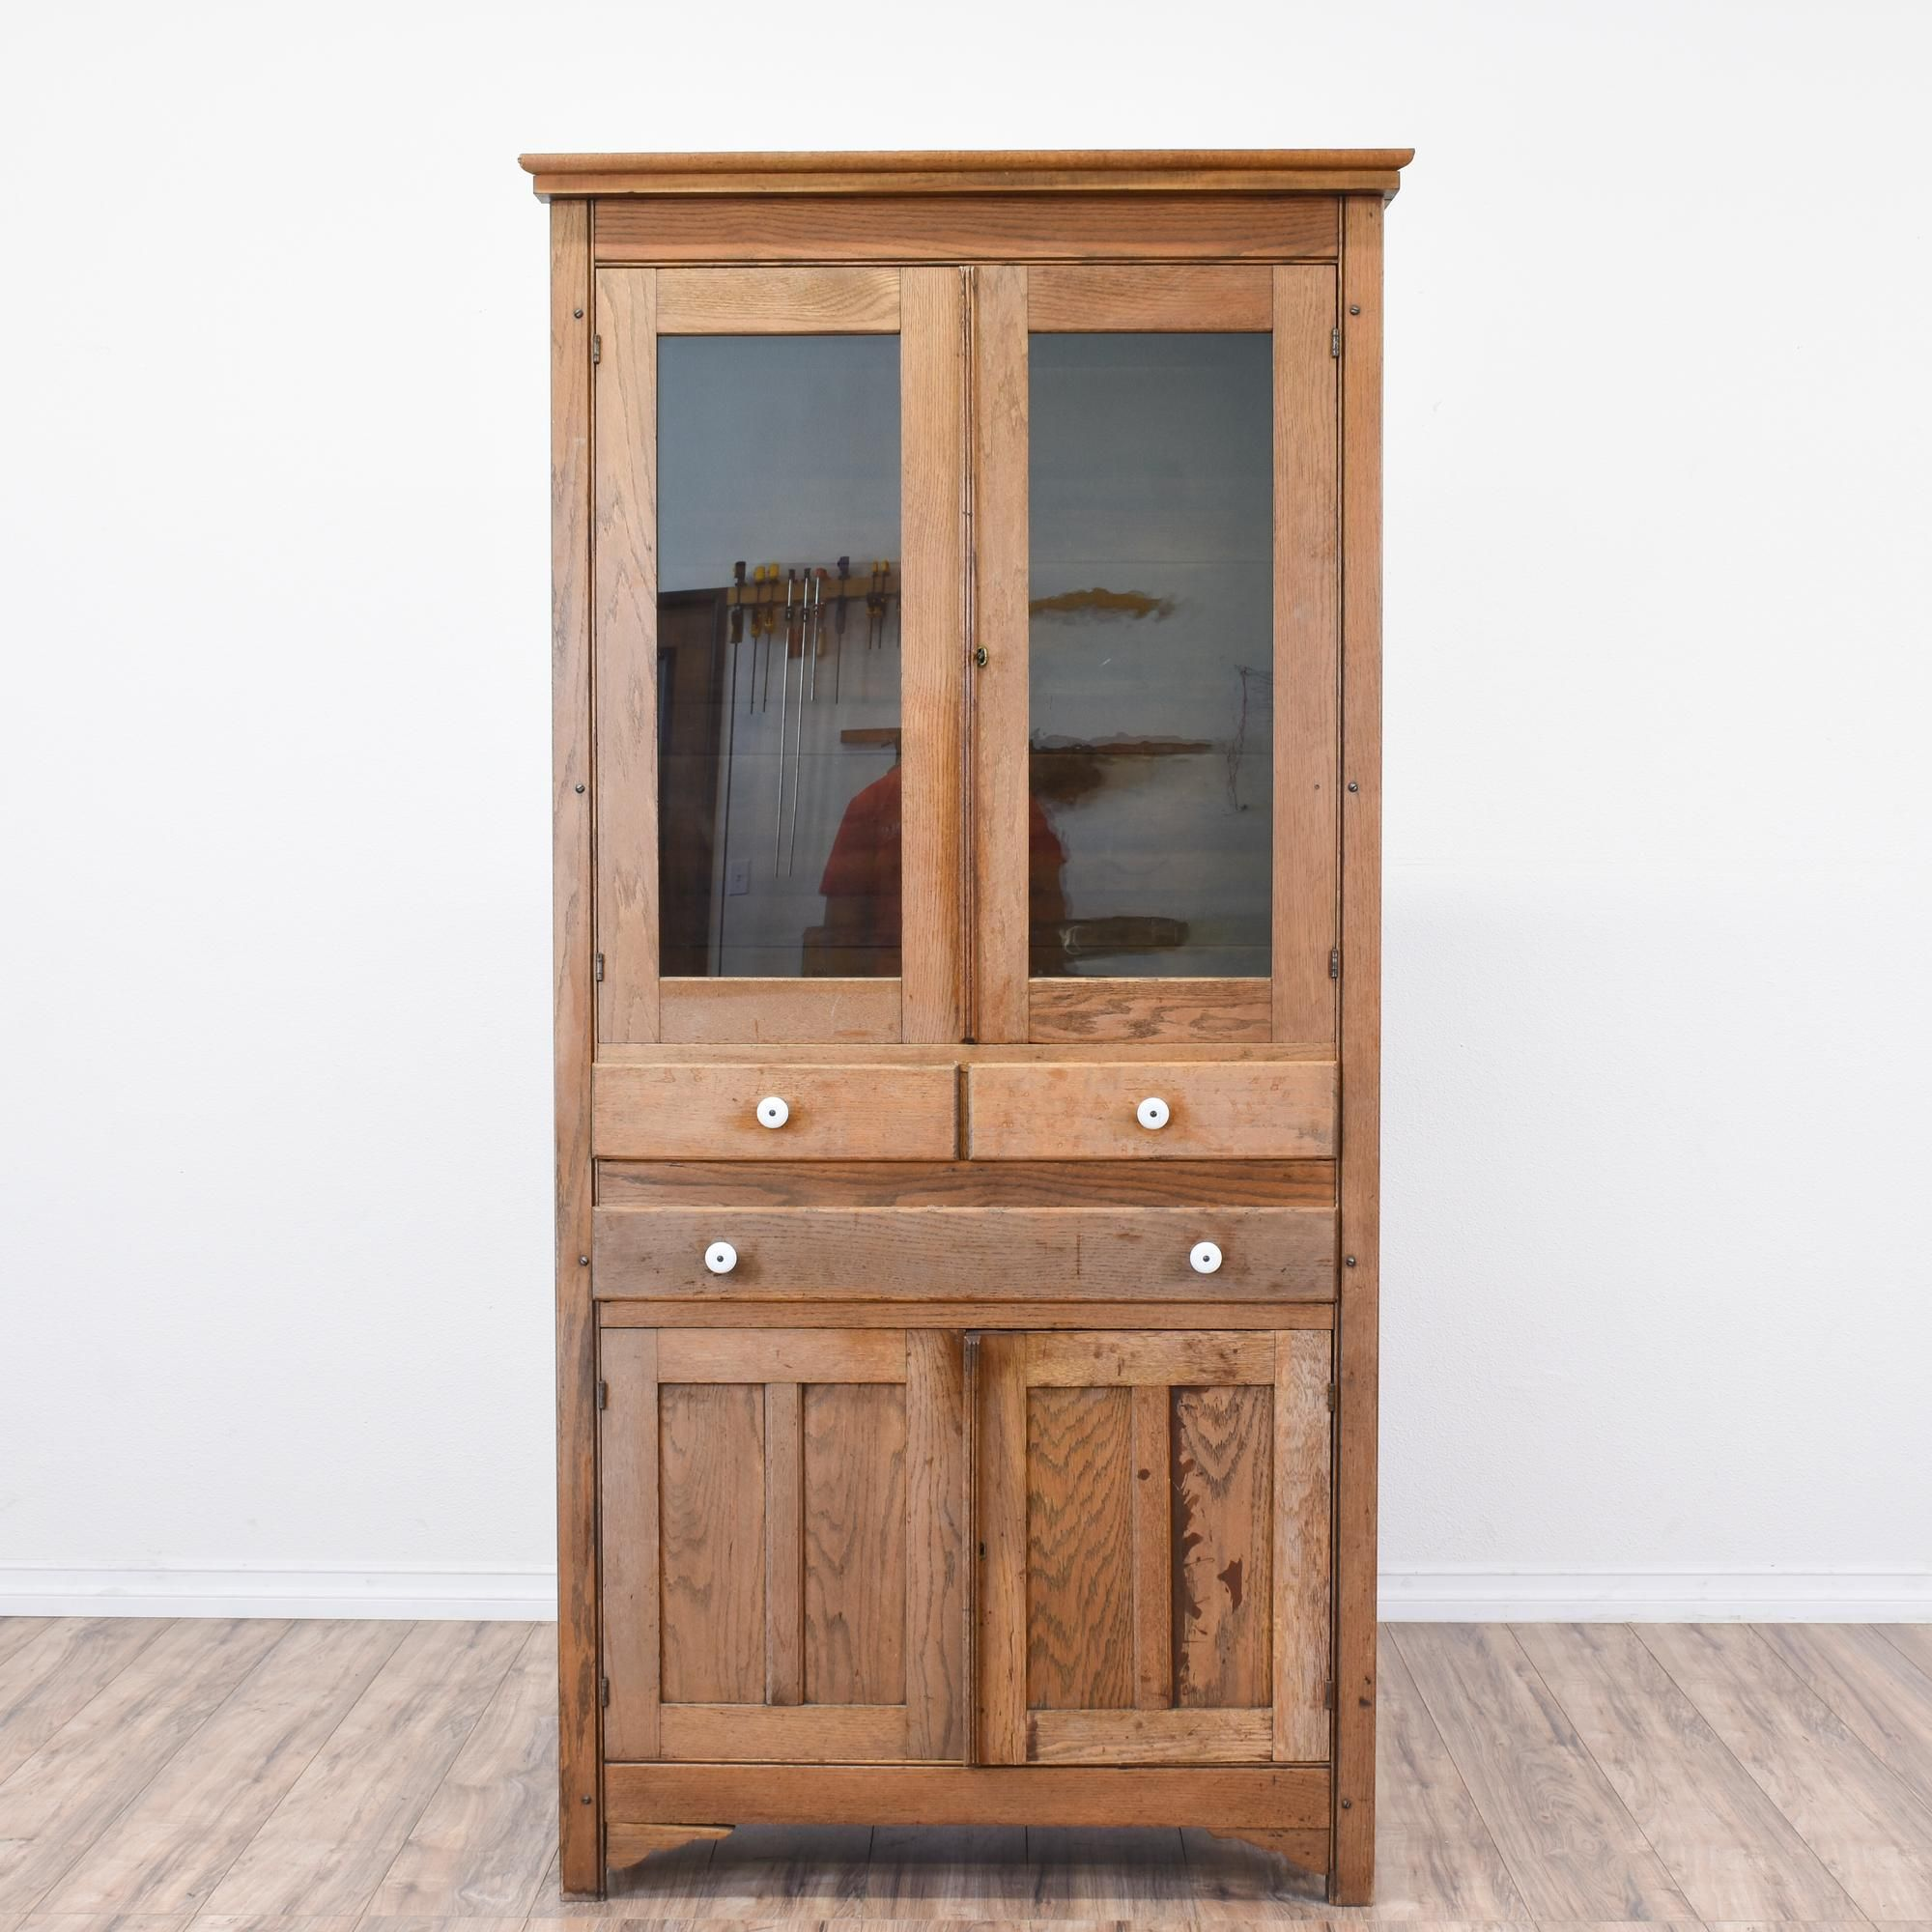 This Rustic Antique China Cabinet Is Featured In A Solid Wood With Raw Oak Finish Tall Hutch Great Condition 3 Large Silverware